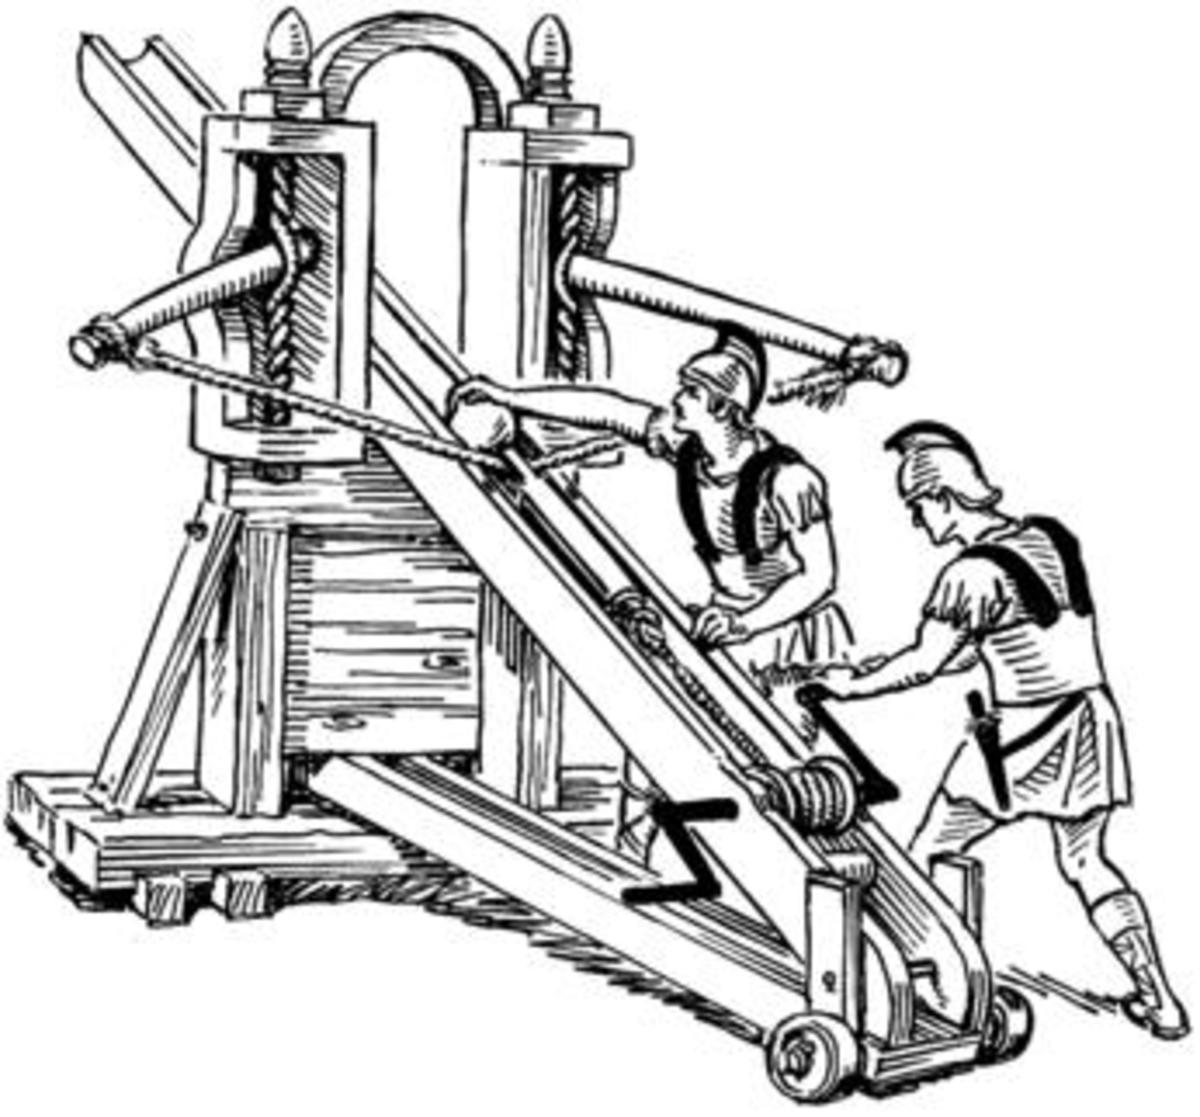 The ballista: A siege weapon utilizing the same principles as the crossbow that fired bronze bolts capable of piercing armor.